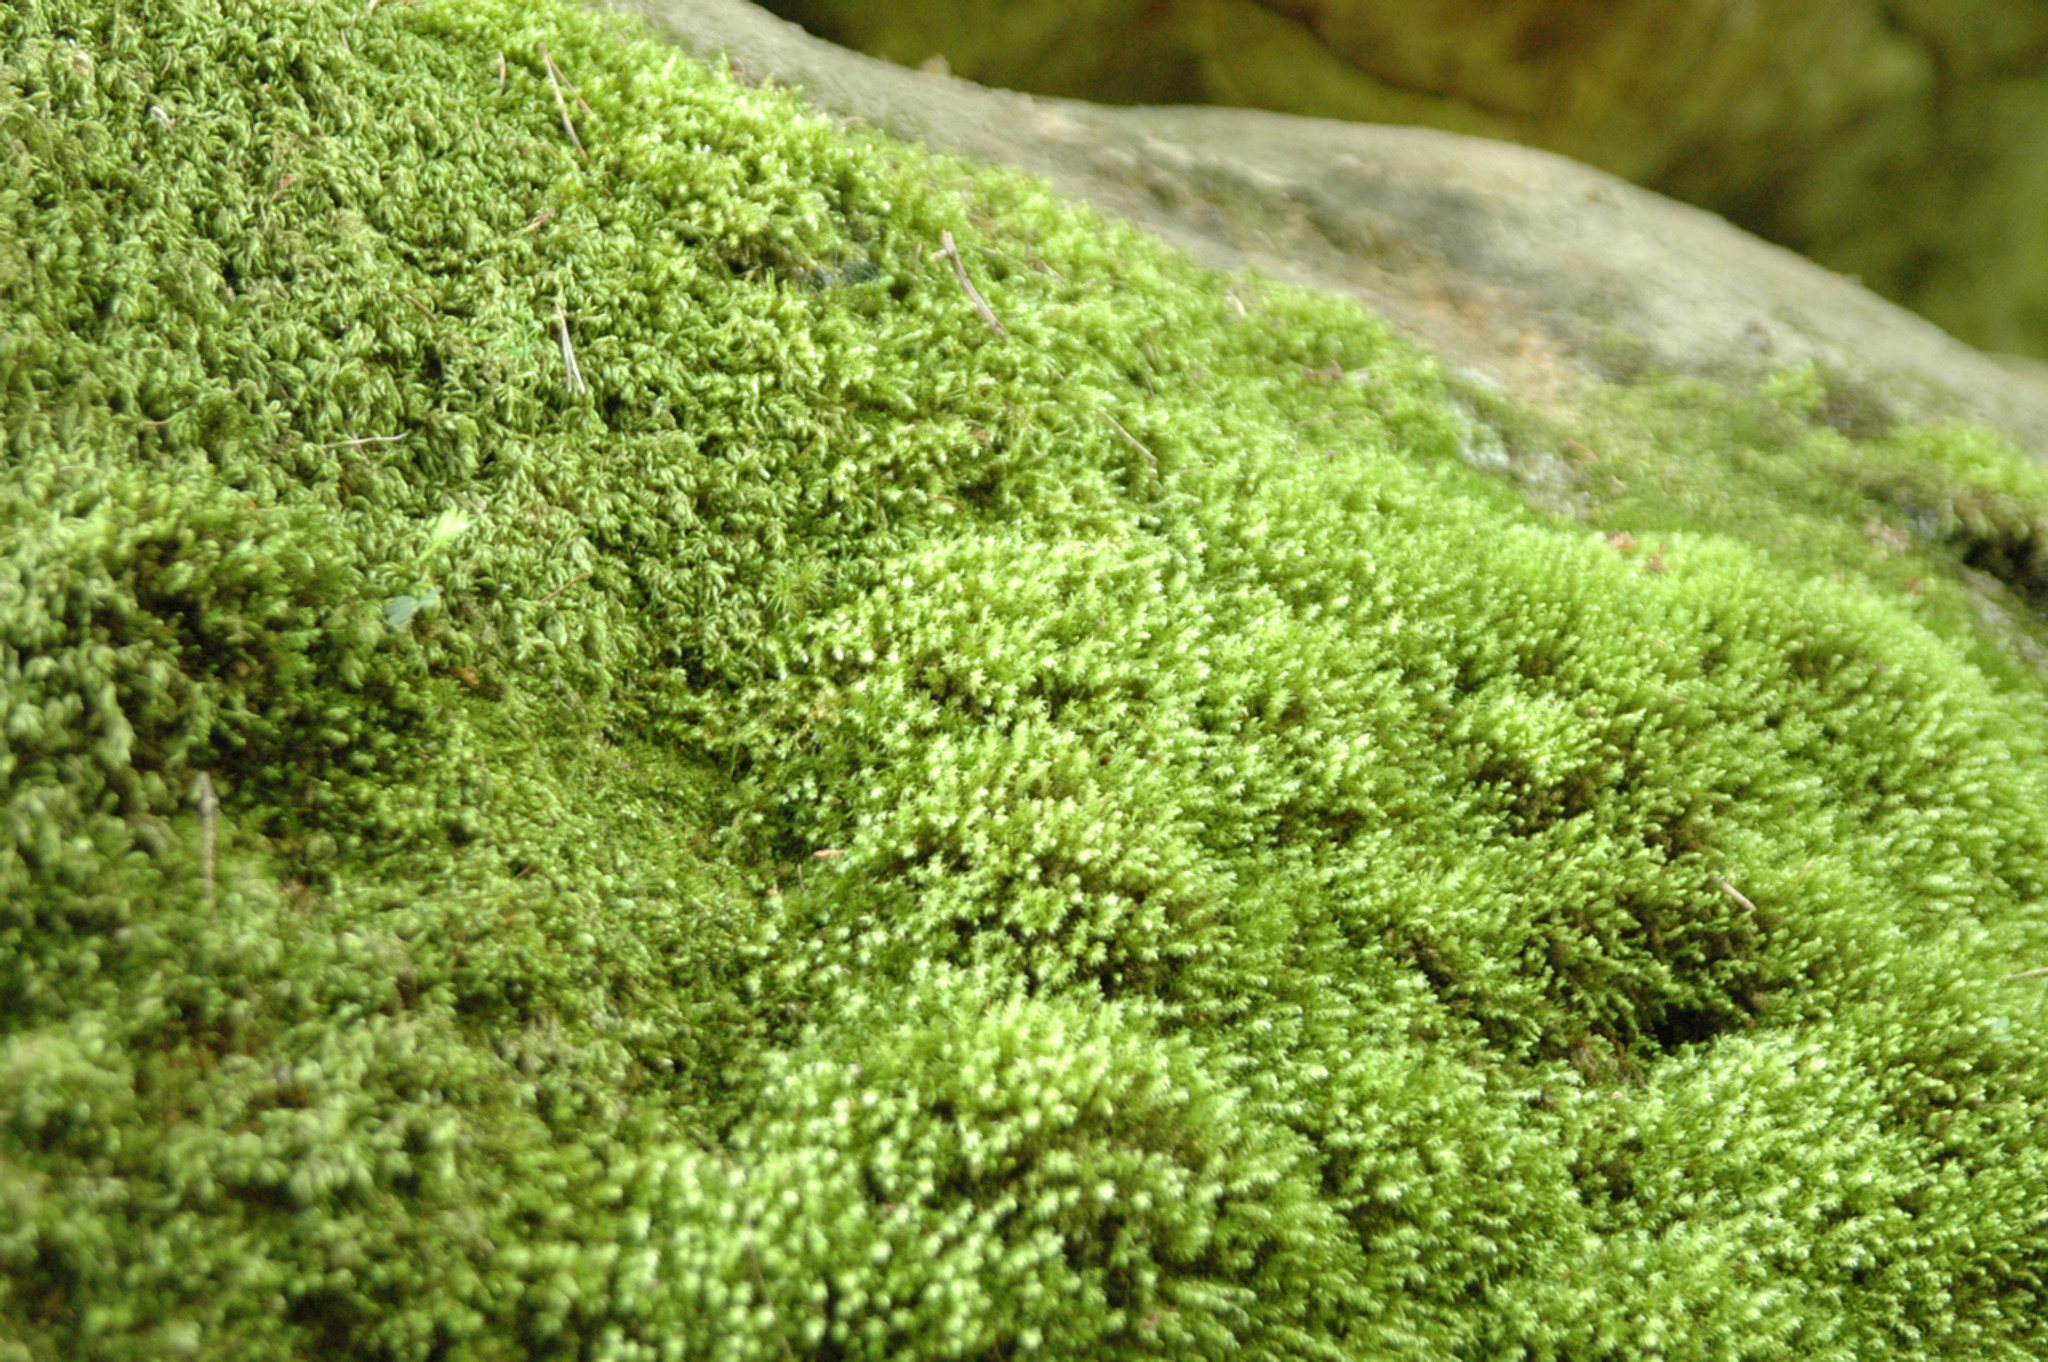 Buy Live Carpet Moss Online Freshly Harvested Moss